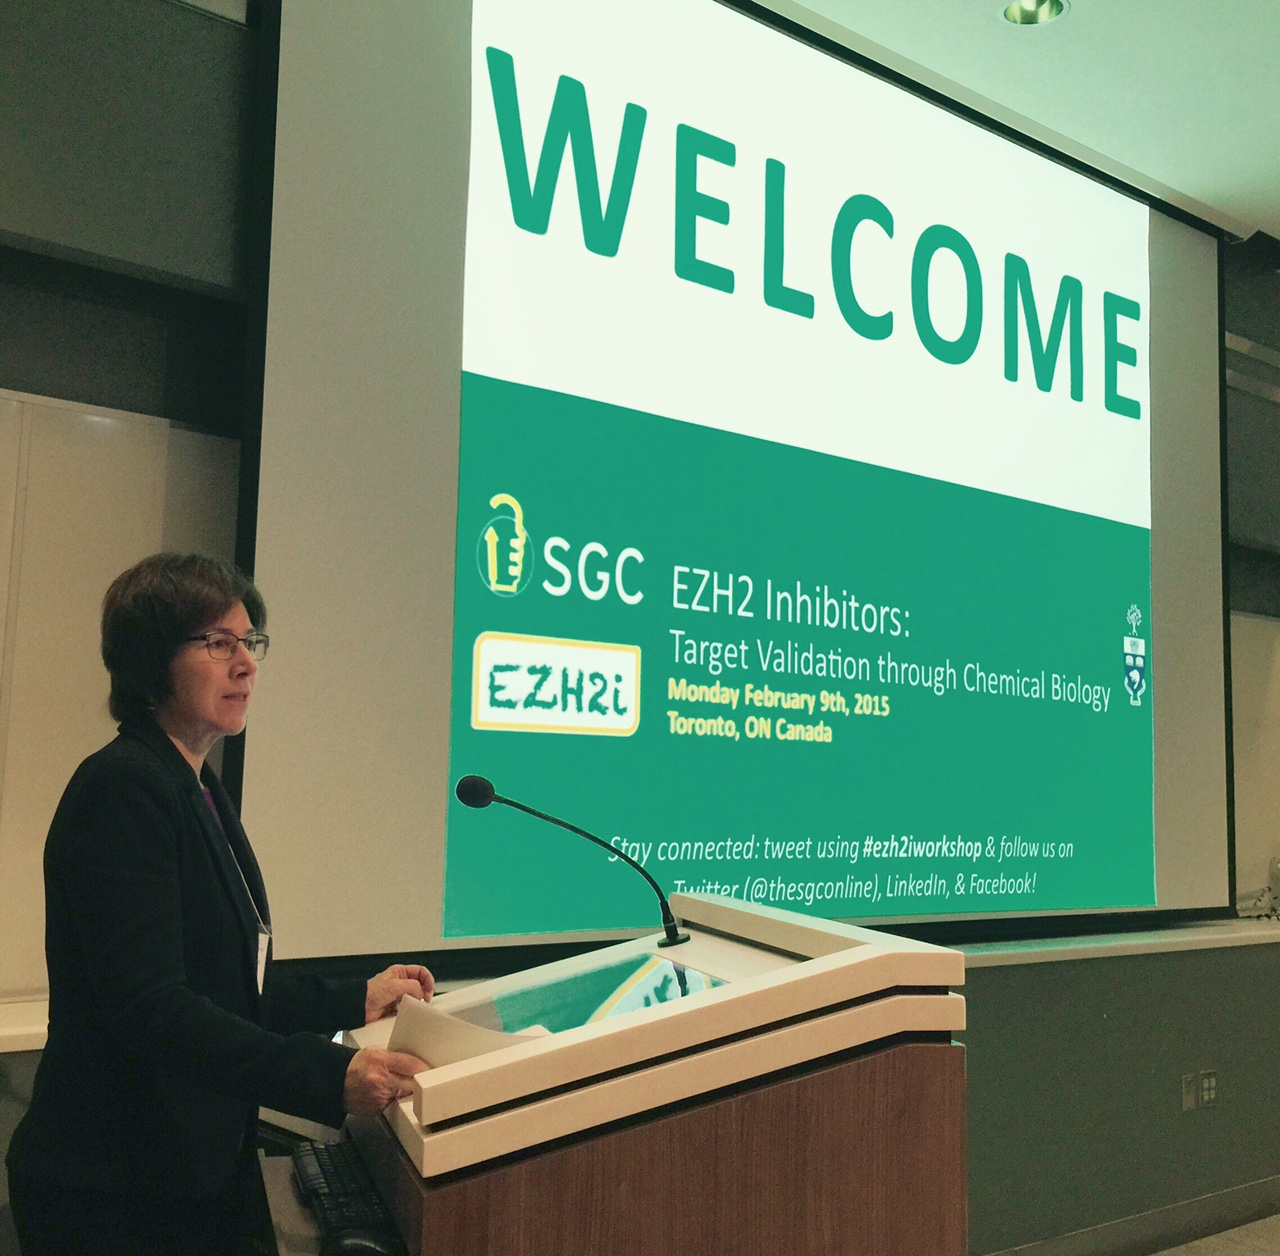 Dr Cheryl Arrowsmith welcomes participants at SGC's workshop on EZH2 inhibitors